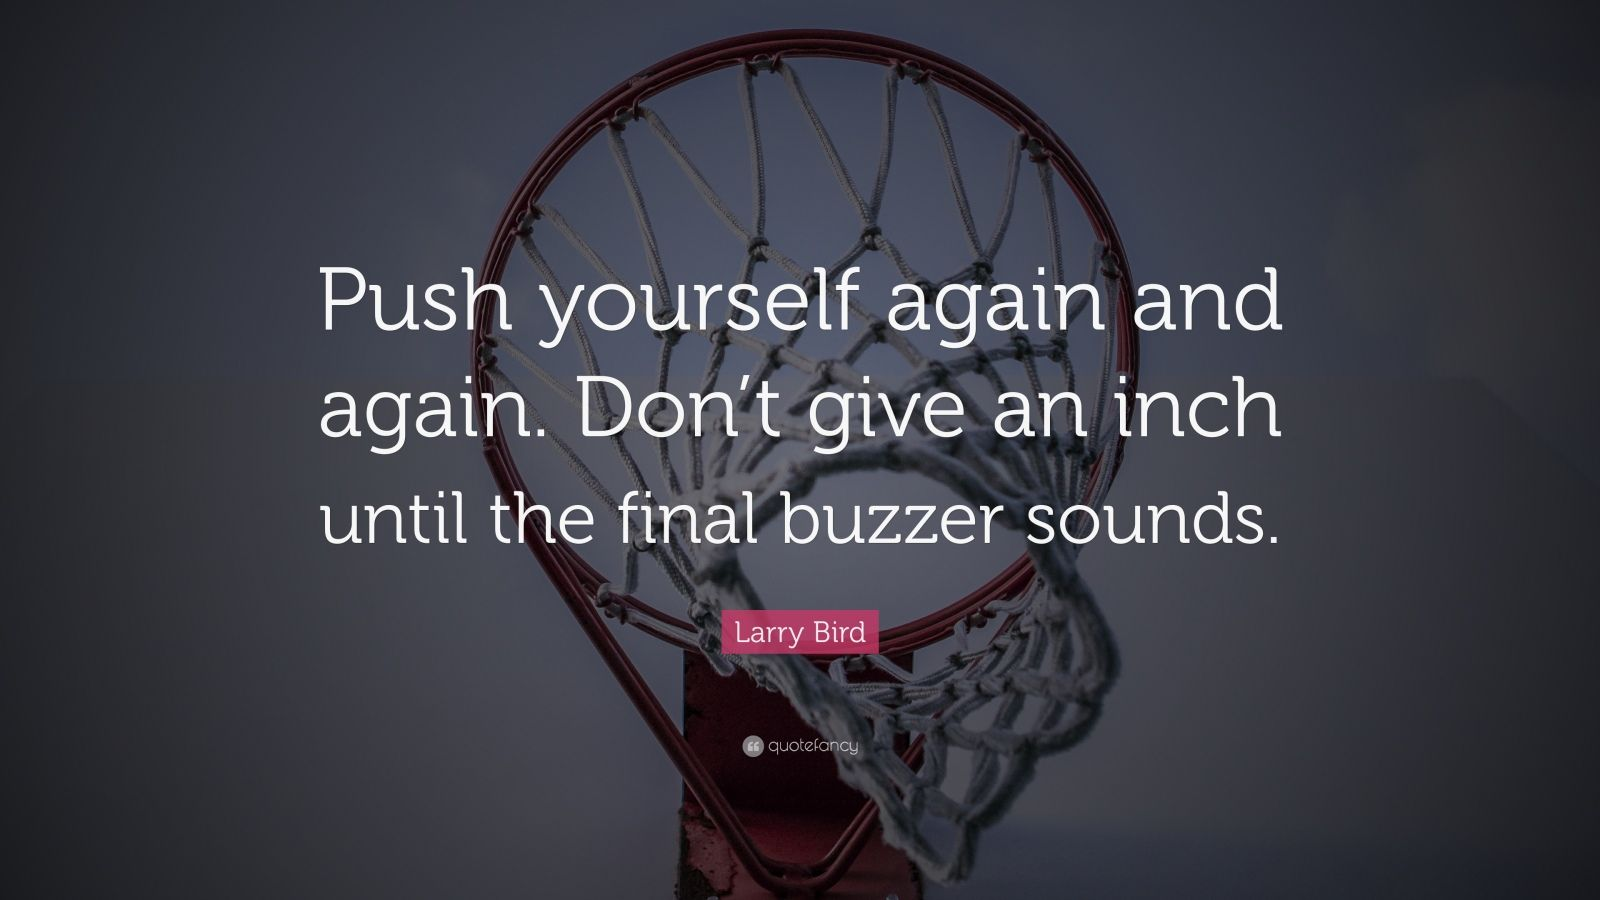 Motivational Wallpaper Quotes Kobe Larry Bird Quote Push Yourself Again And Again Don T